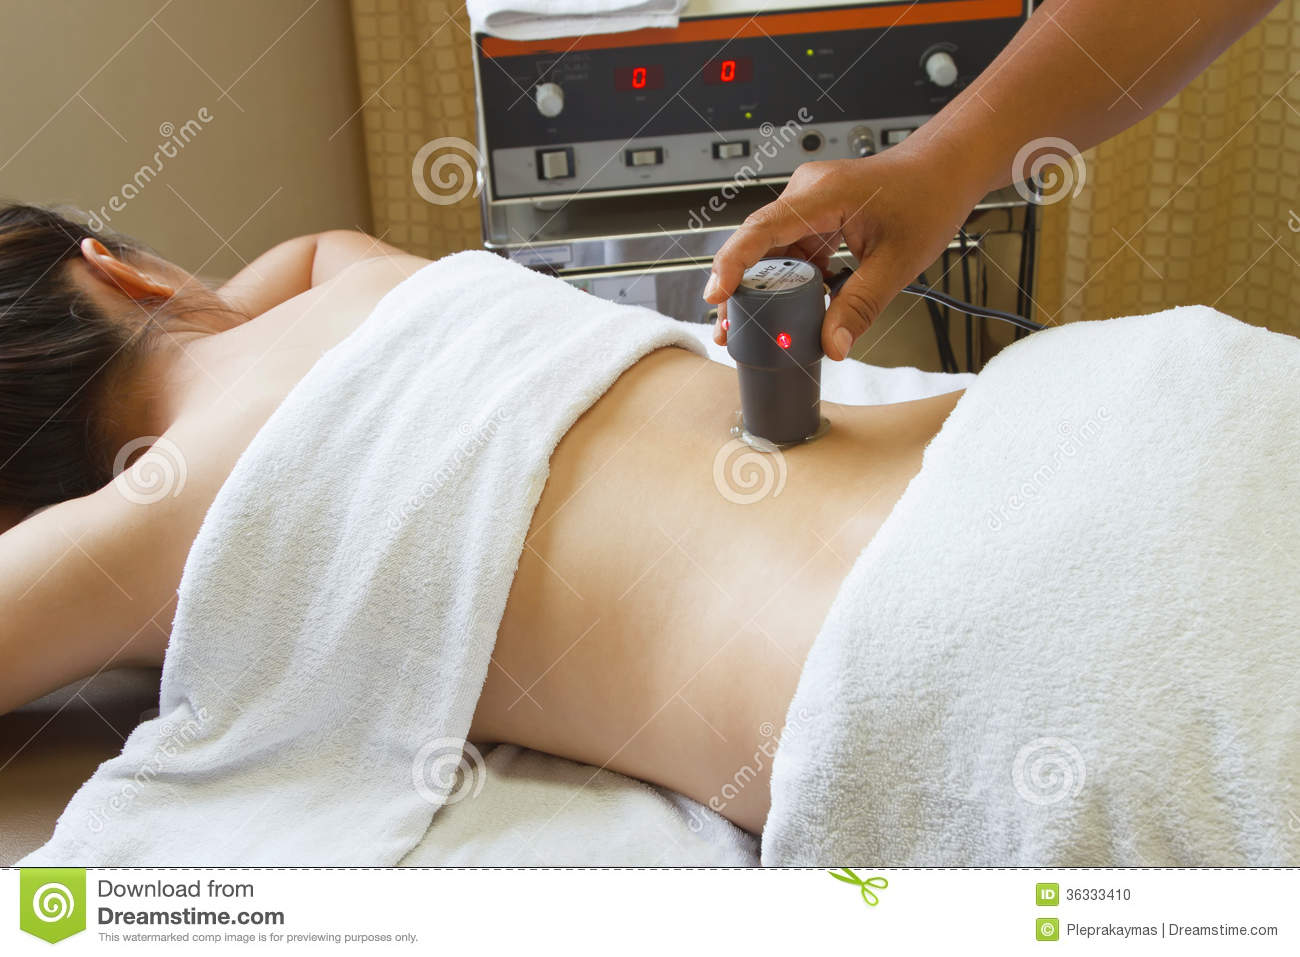 Breast ultrasound: Uses and what to expect